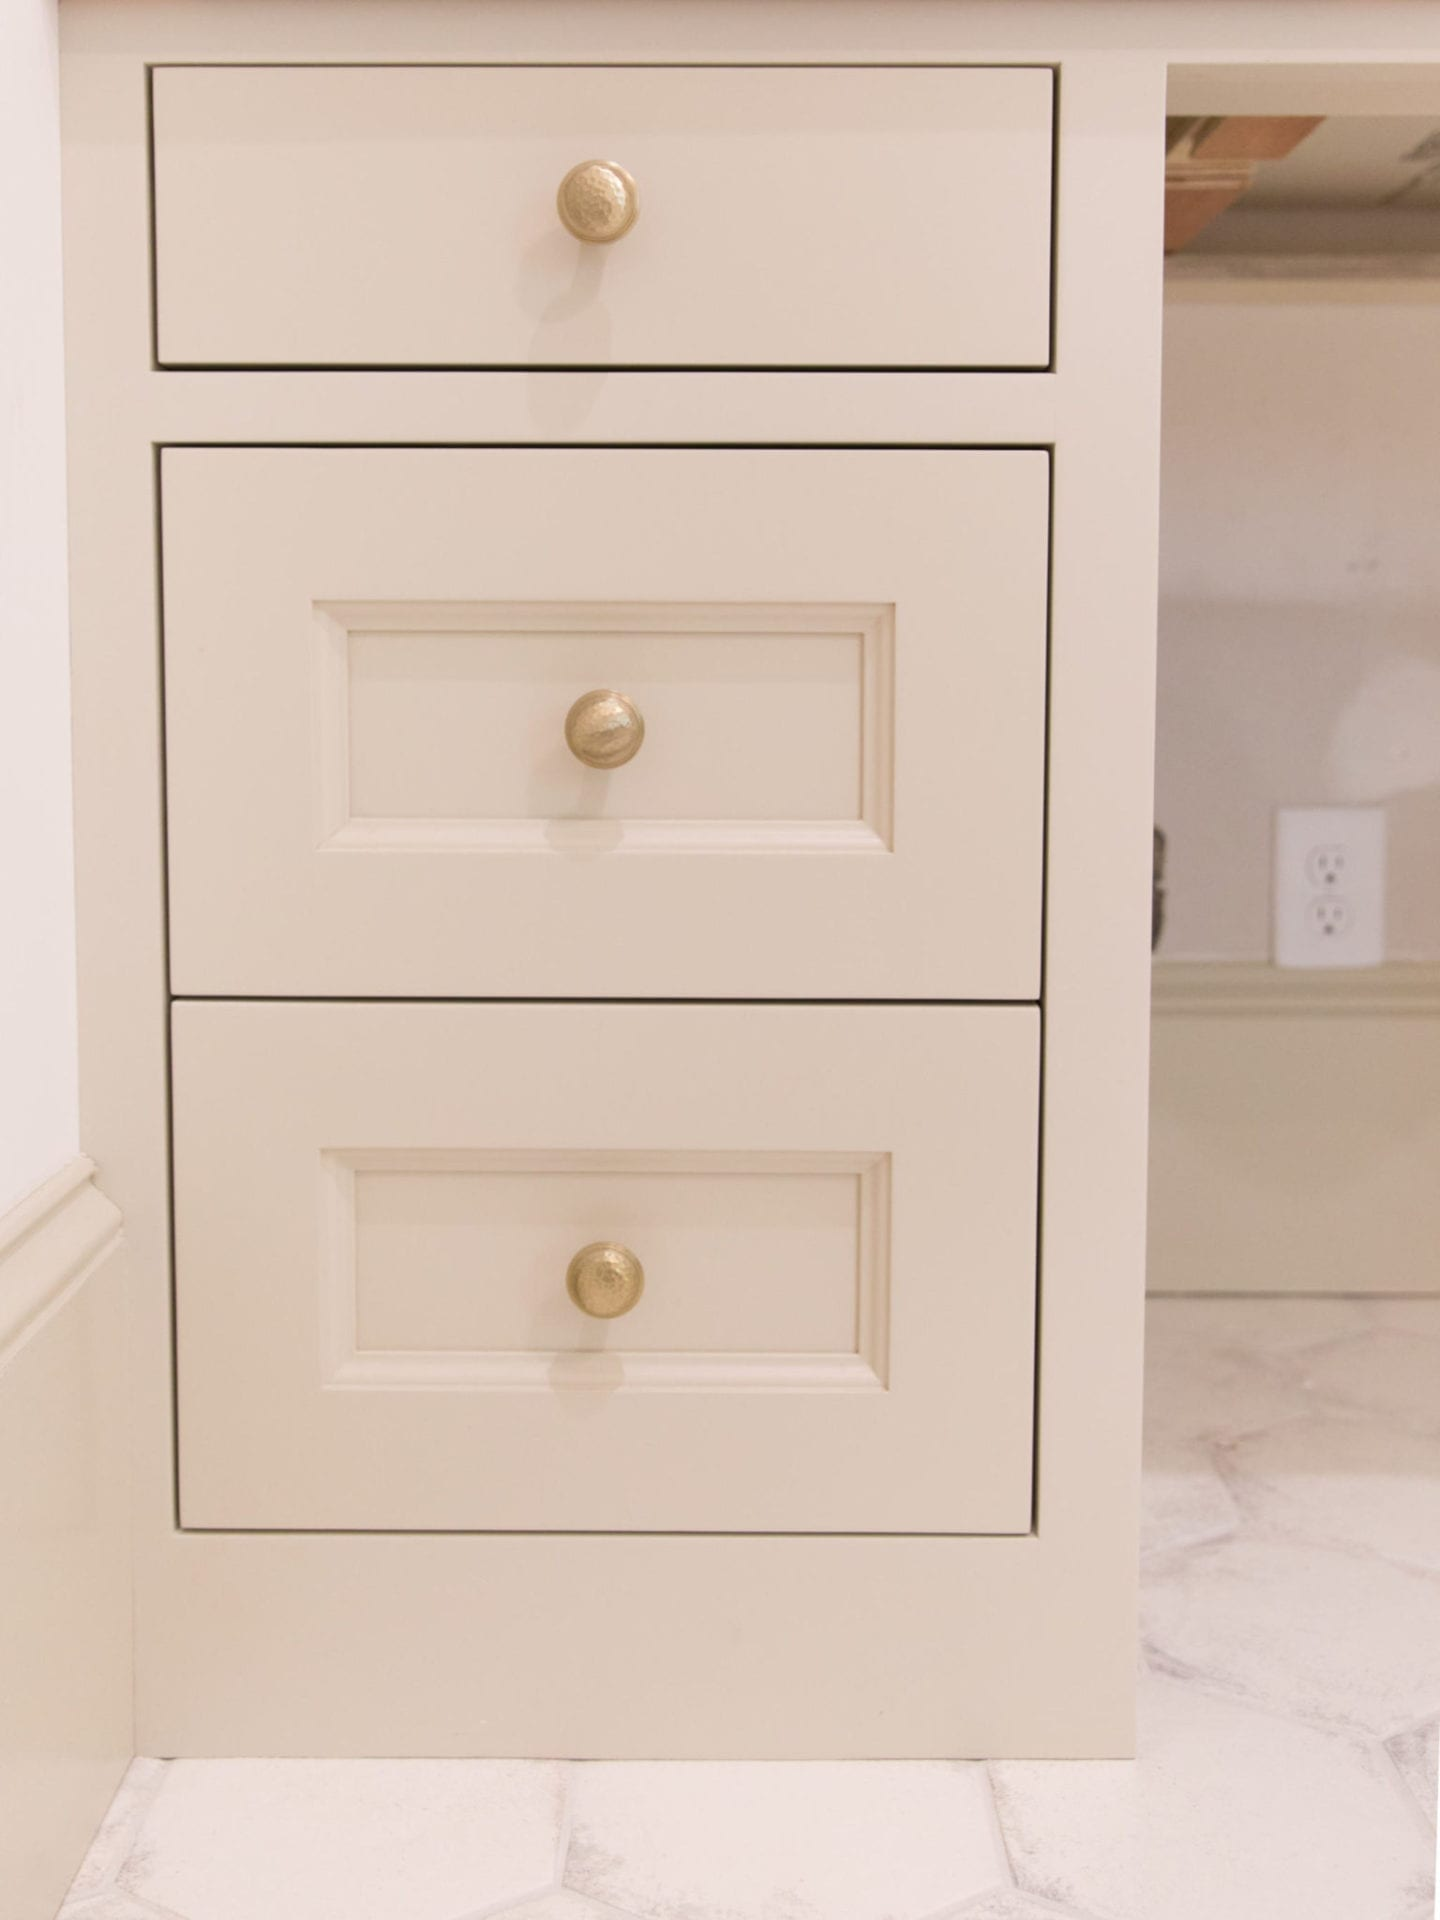 Hammered Hardware in bronze gold with Sherwin Williams Accessible Beige painted cabinets.